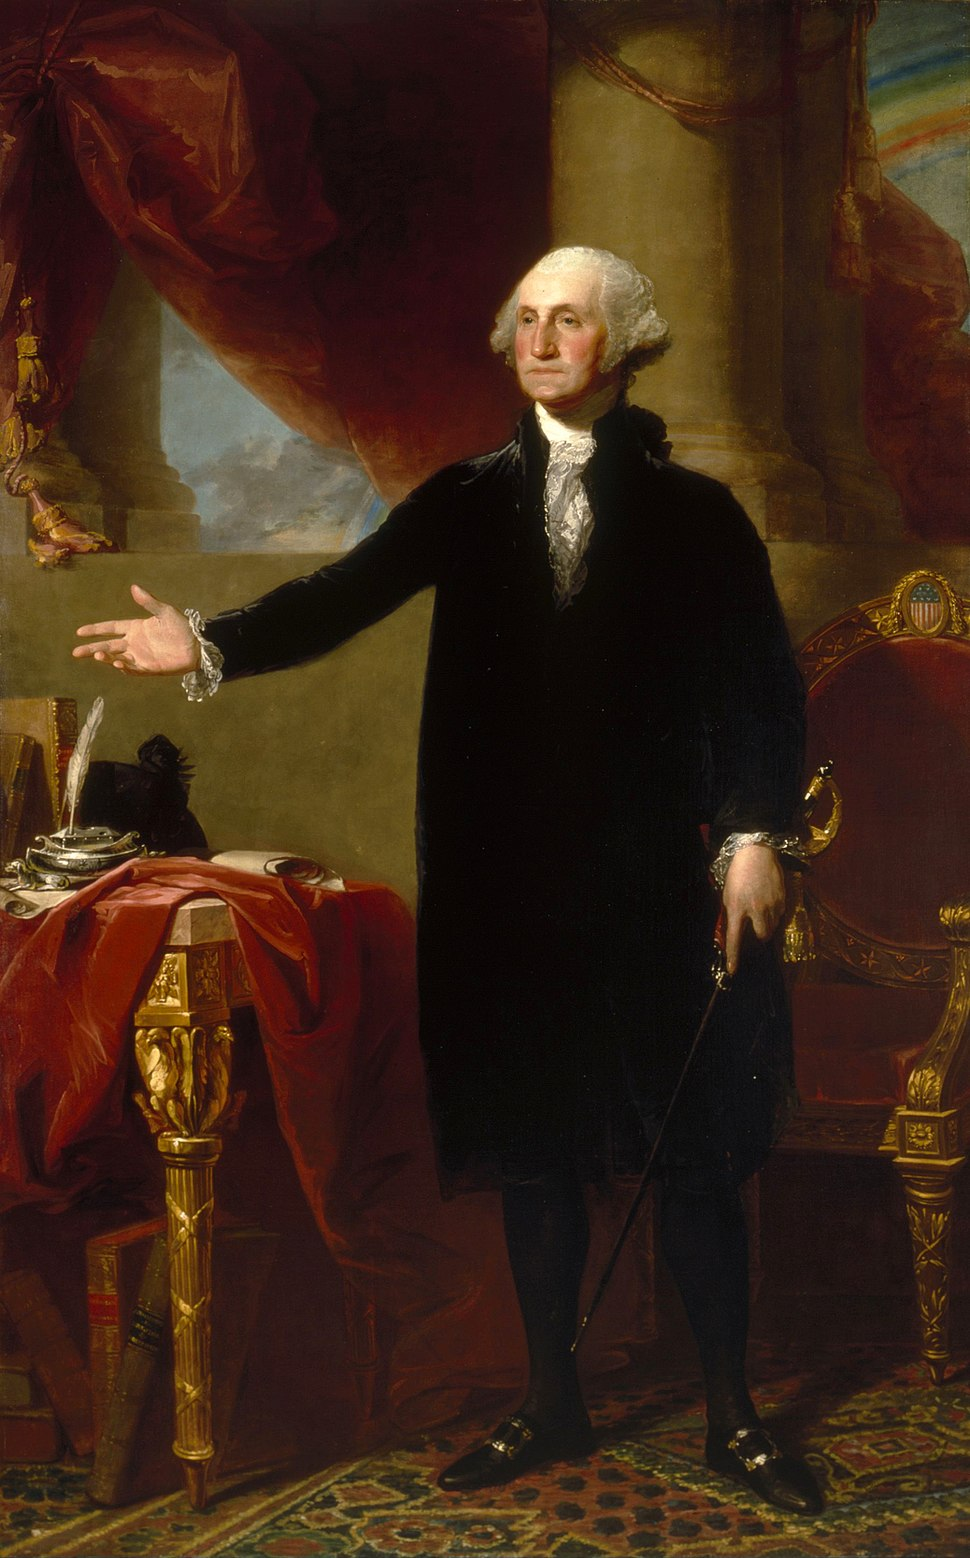 Gilbert Stuart, George Washington (Lansdowne portrait, 1796)